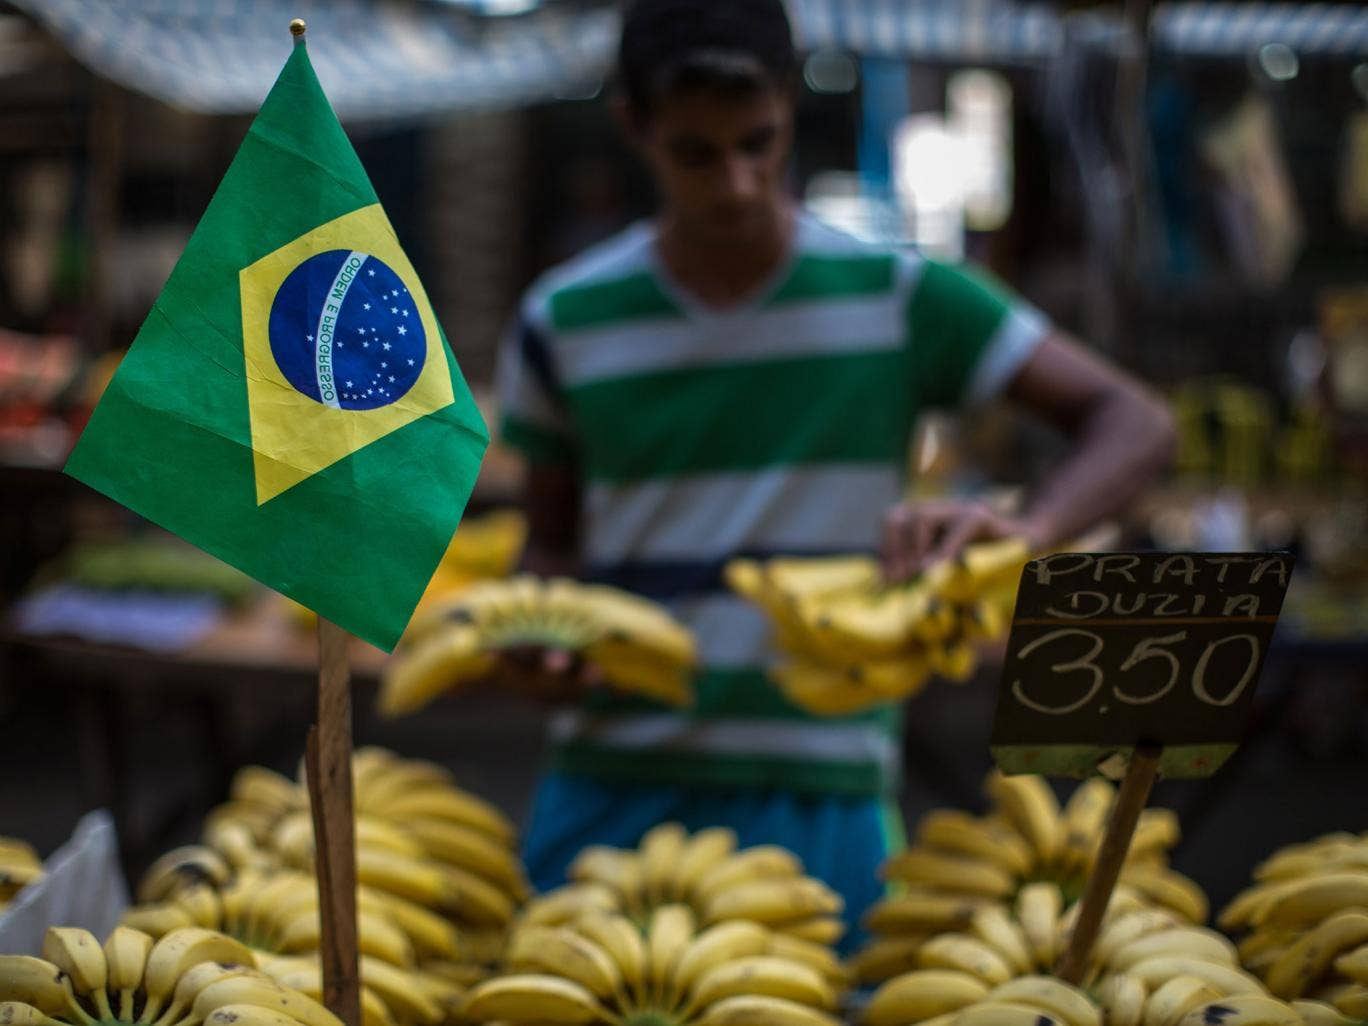 A stallholder sells bananas at Mare complex shantytown (favela) in Rio de Janeiro, Brazil, on June 7, 2014, five days before the start of the FIFA World Cup